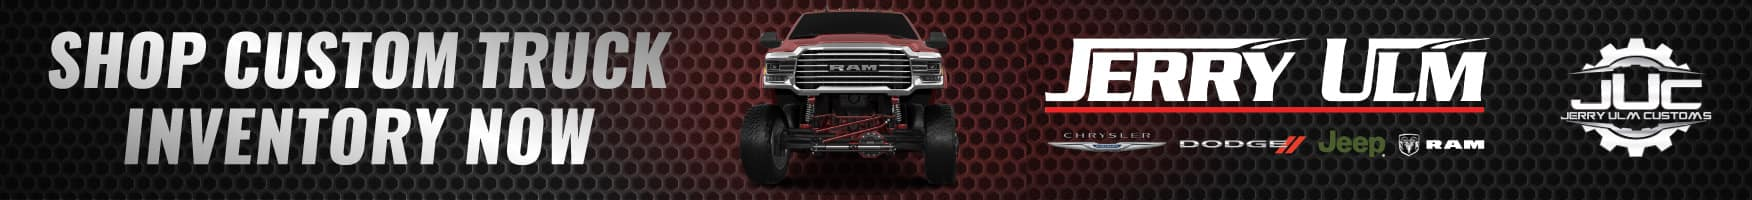 Custom RAM Truck with Jerry Ulm CDJR logo and text reading Shop Custom Truck Inventory Now